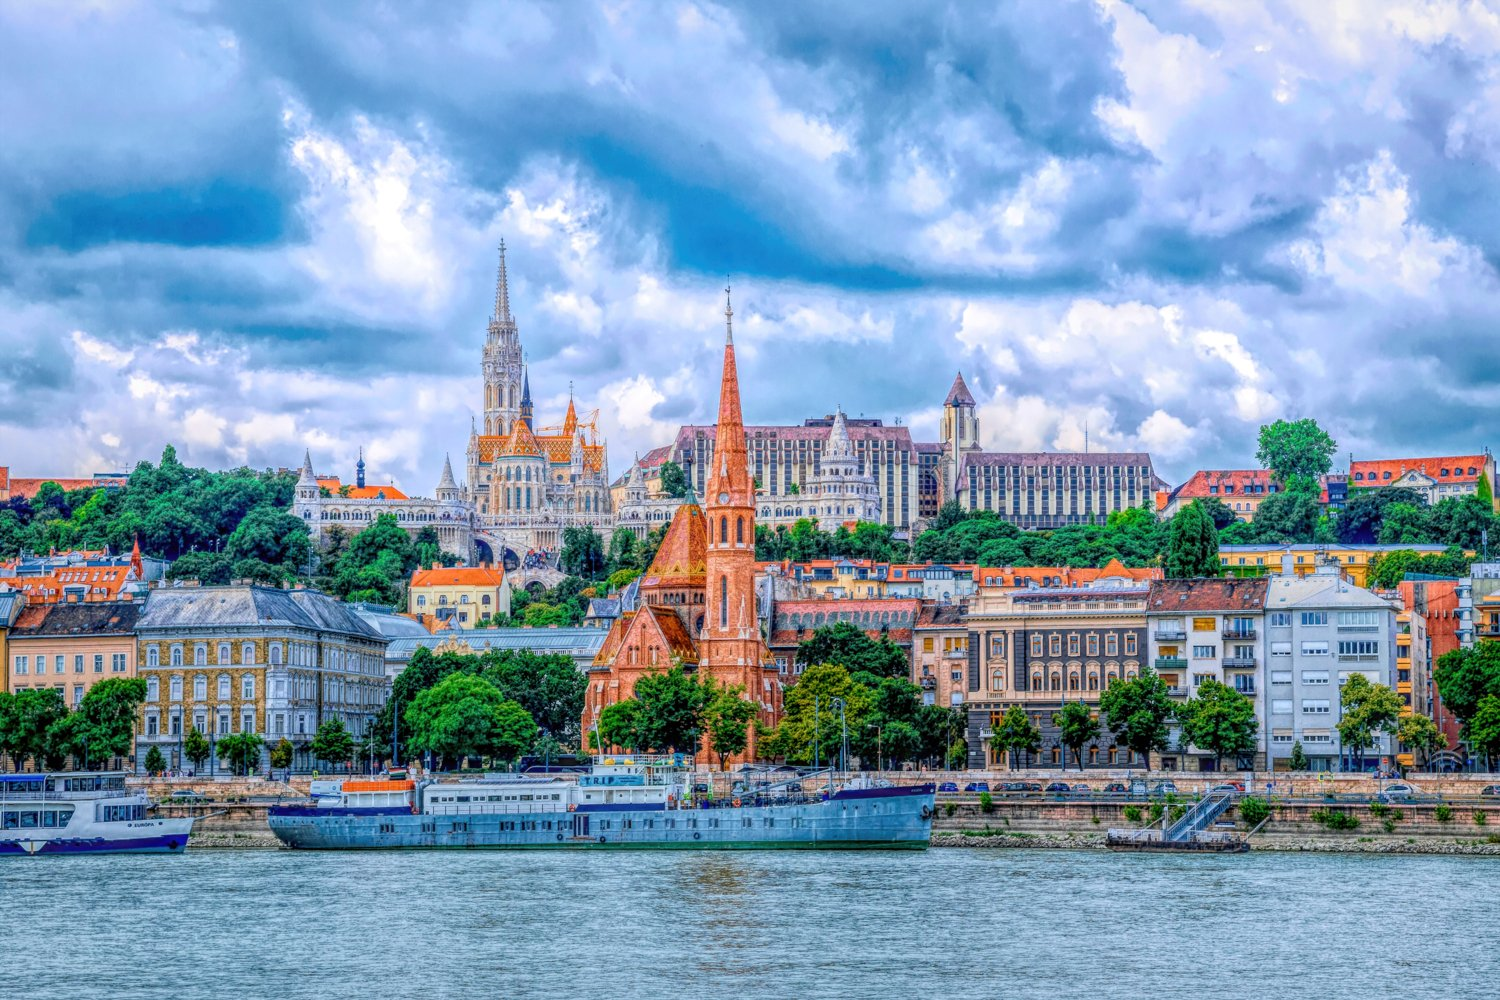 Old houses of Budapest and the Danube River example image 1